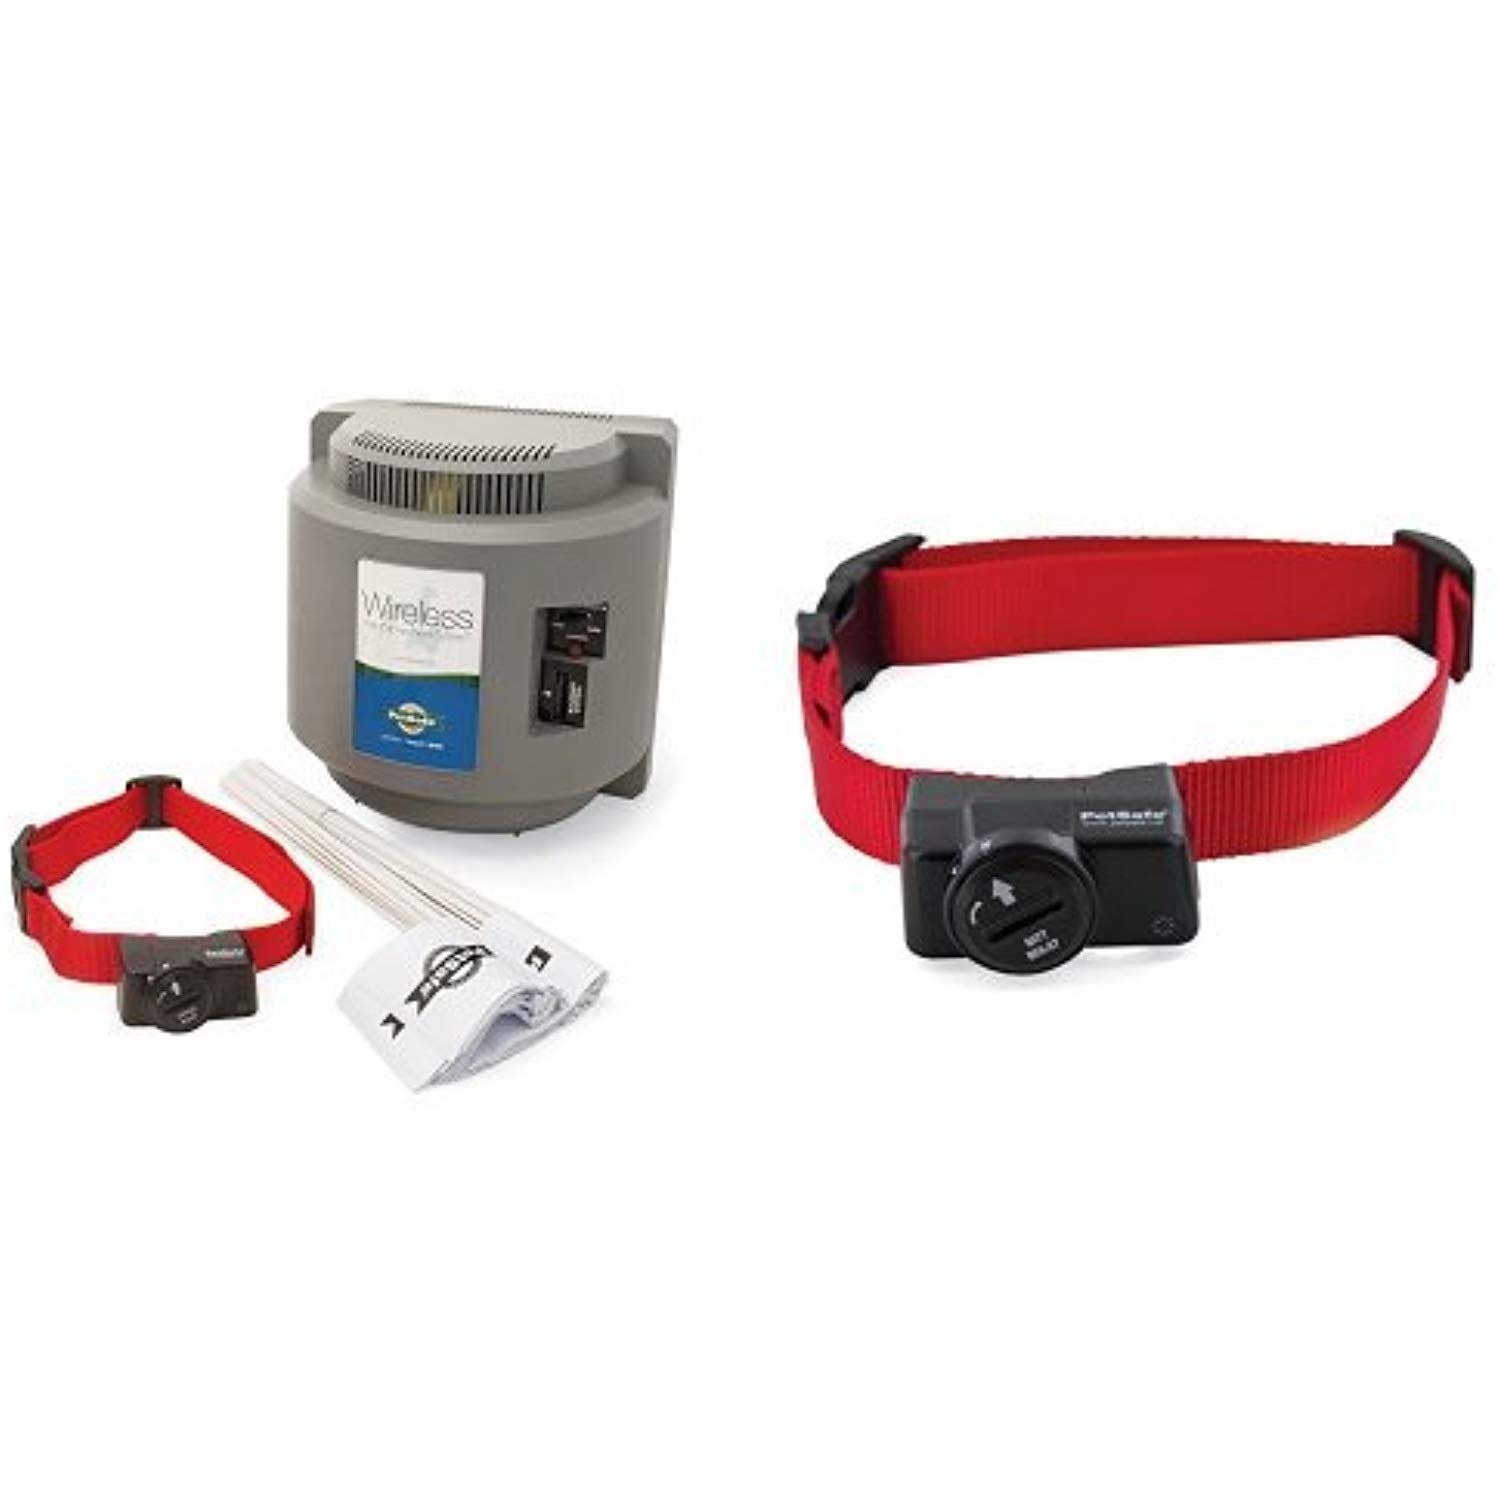 Petsafe Wireless Pet Containment System And Petsafe Wireless Pet